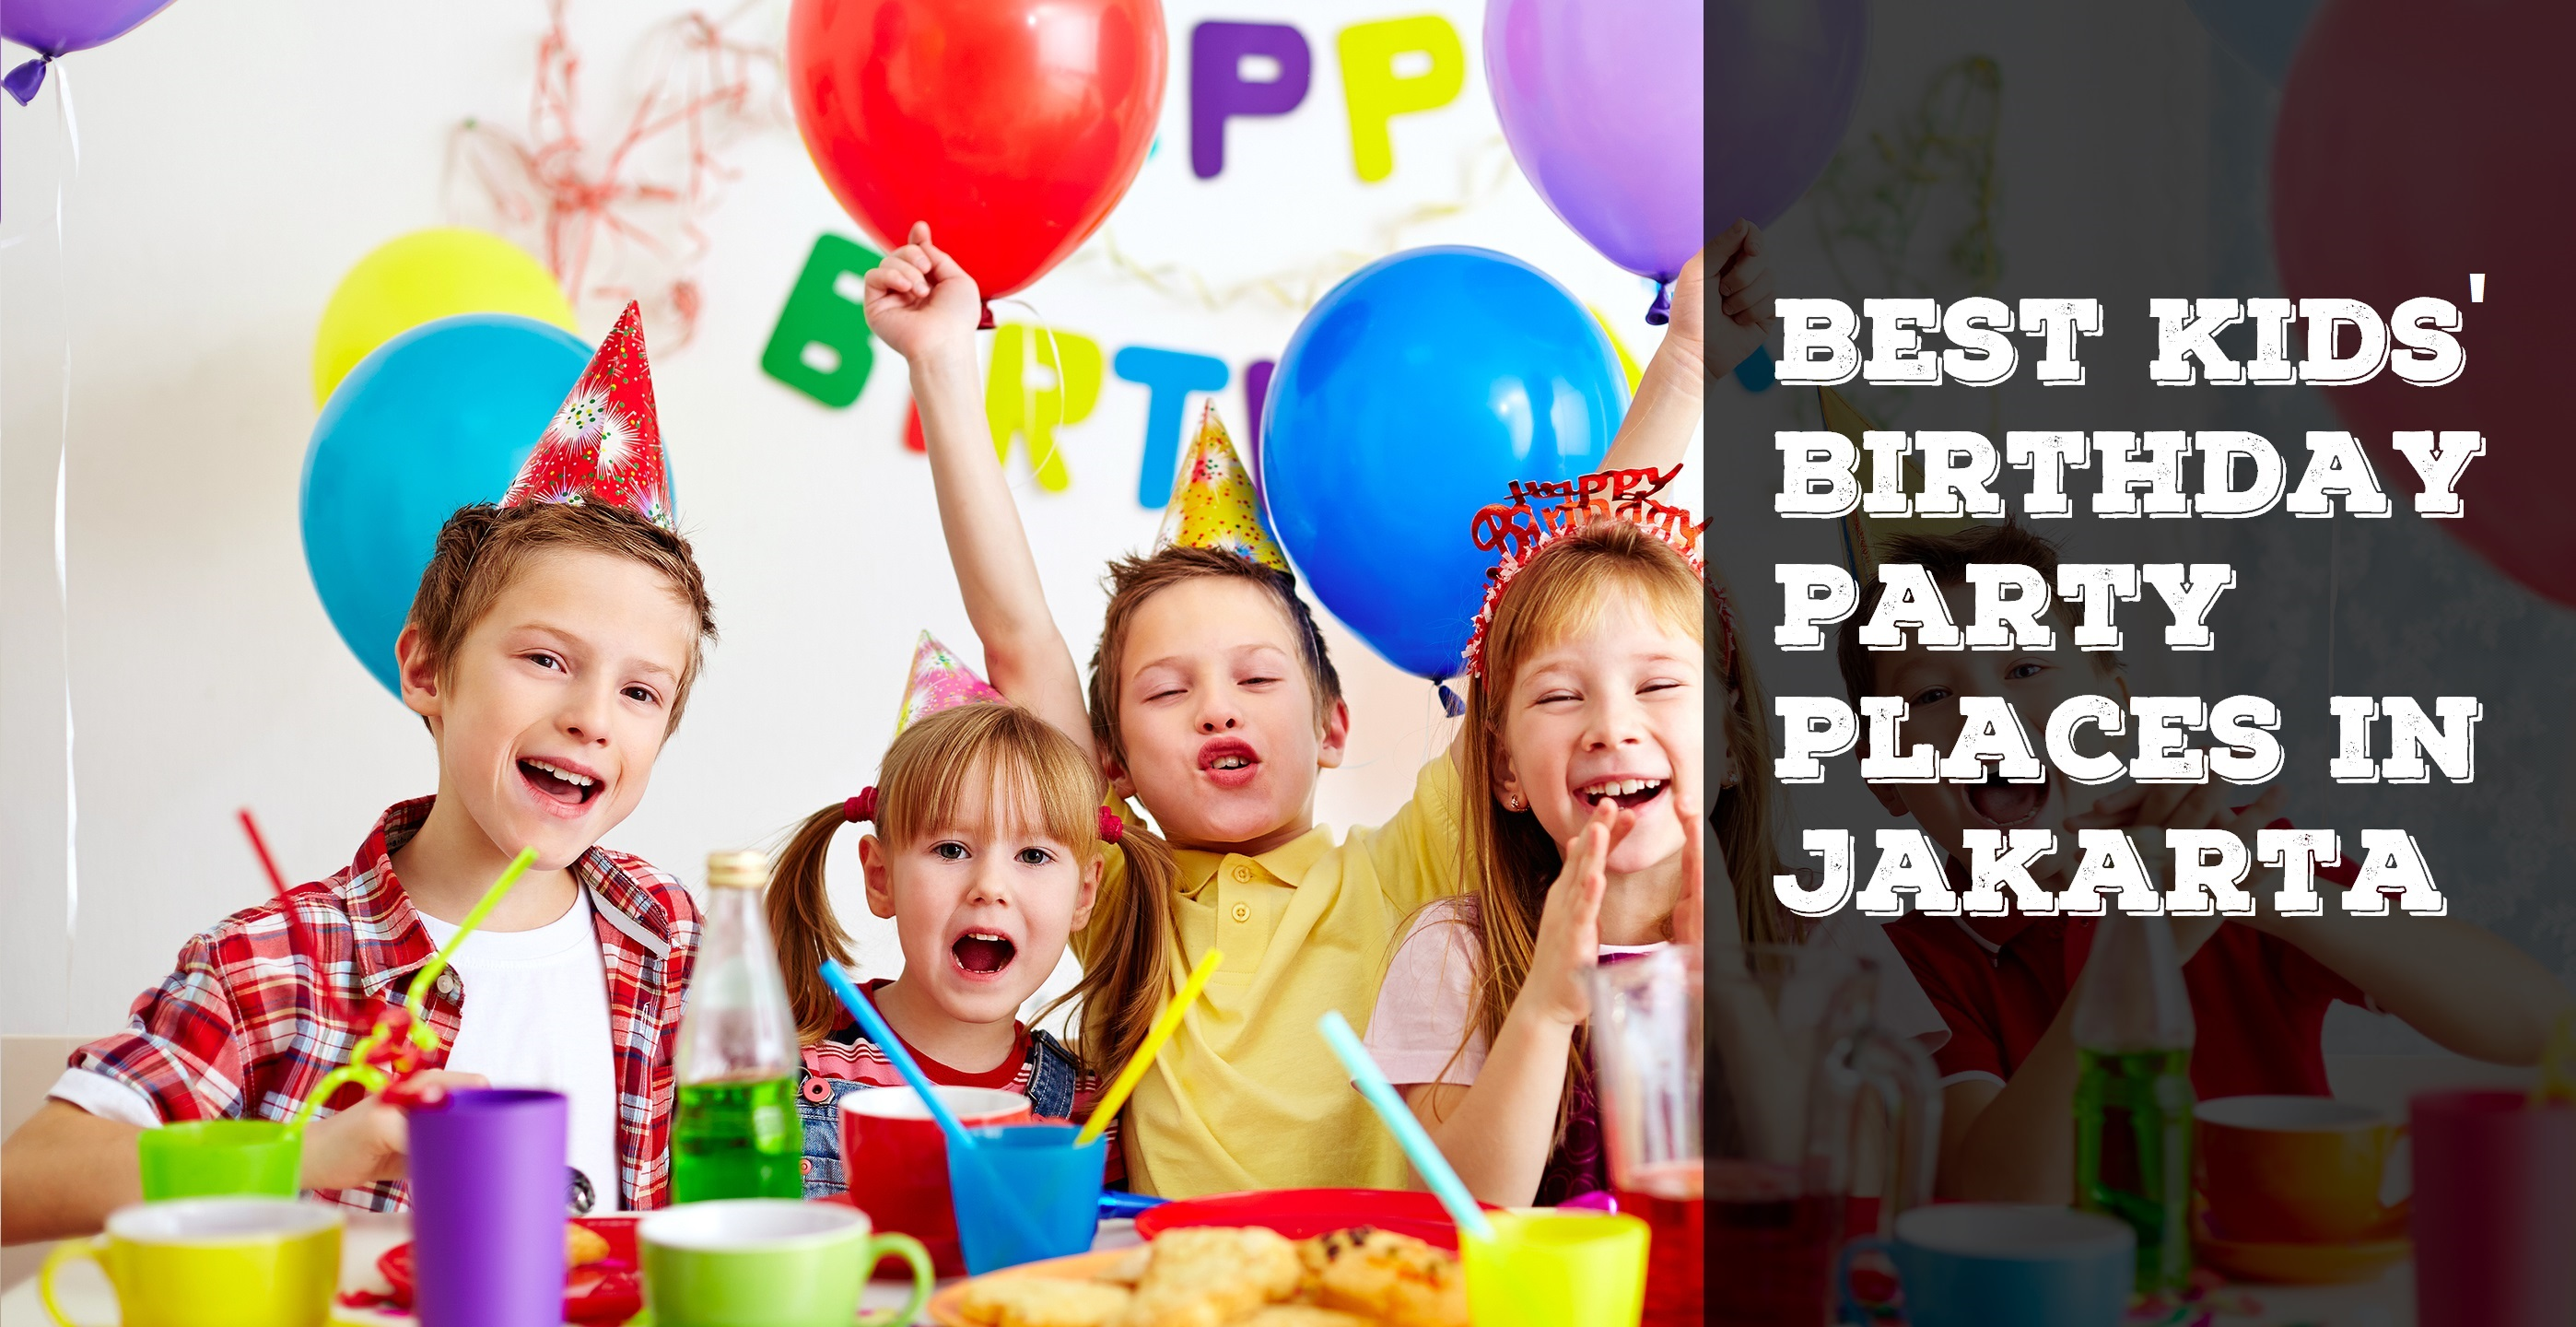 Best Kids' Birthday Party Places in Jakarta!